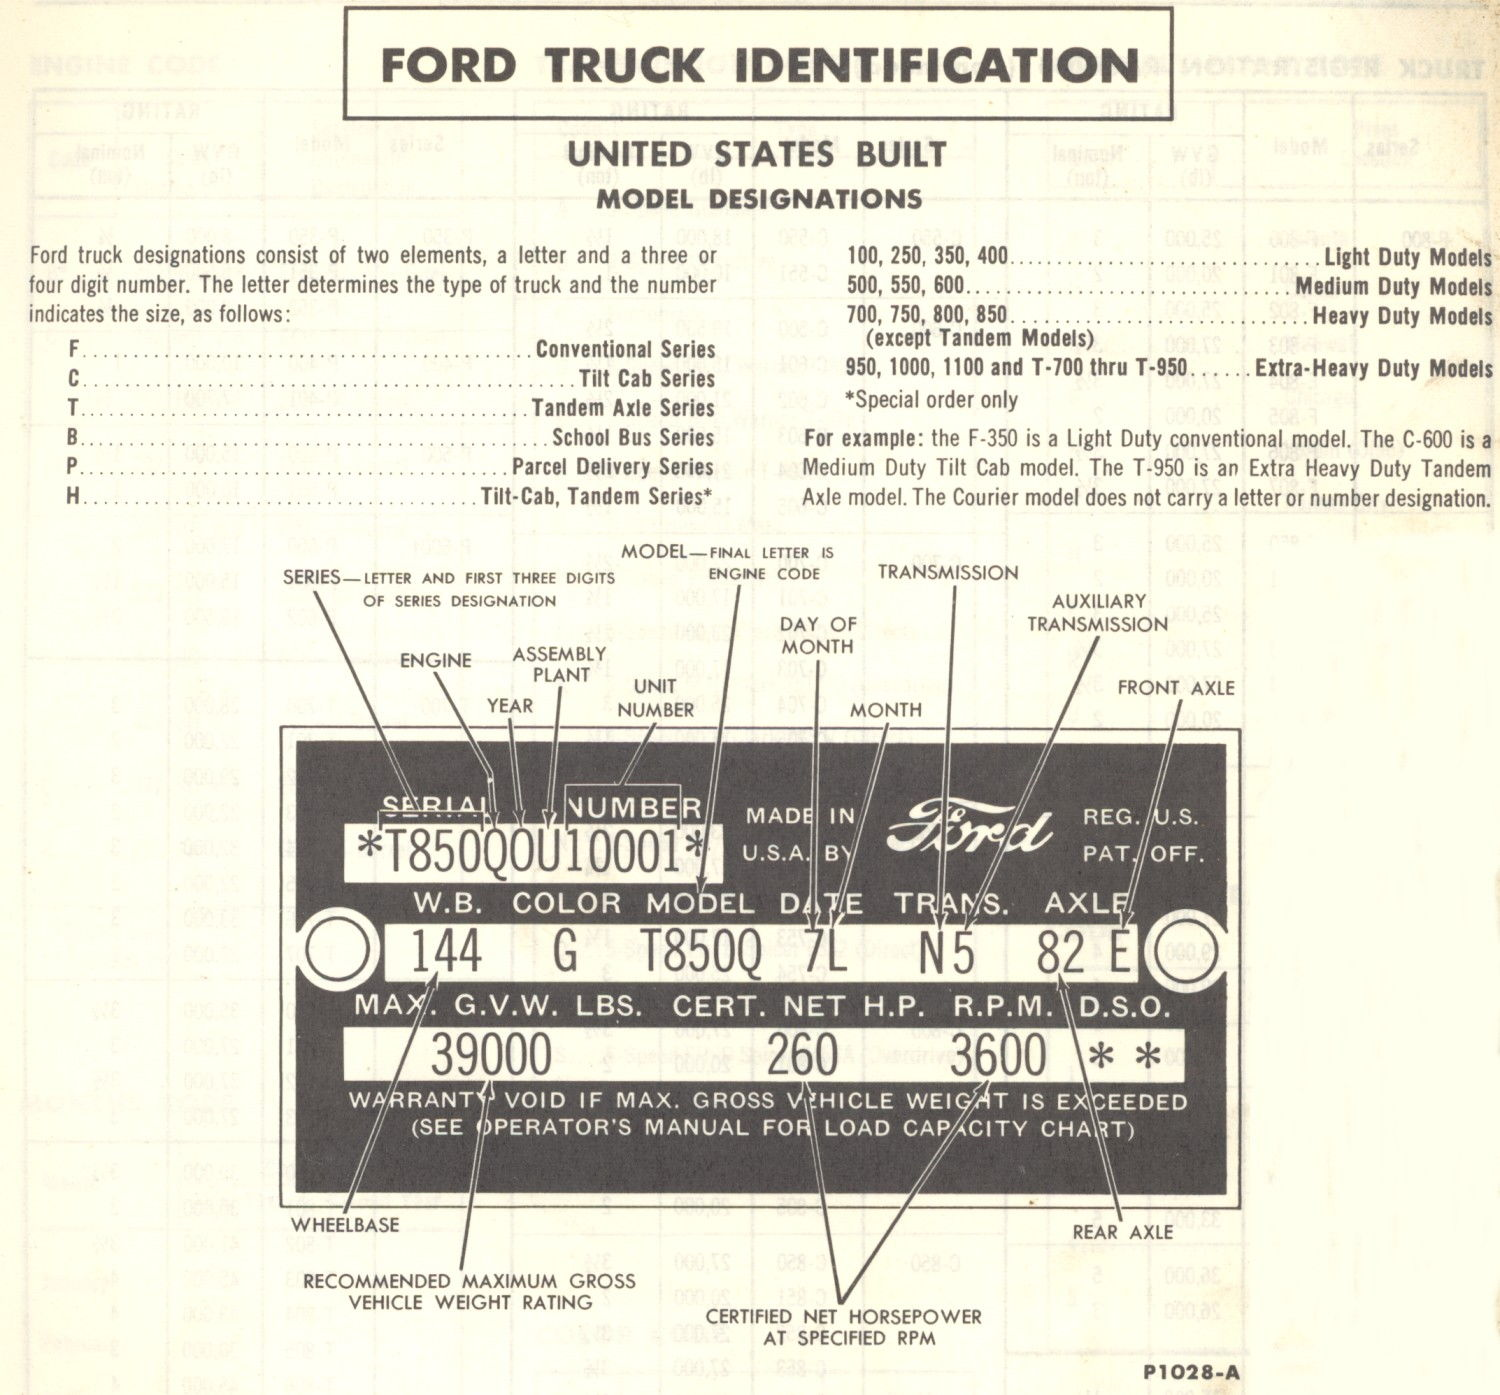 Decoding Warranty Plate And Serial Number 1960 F 100